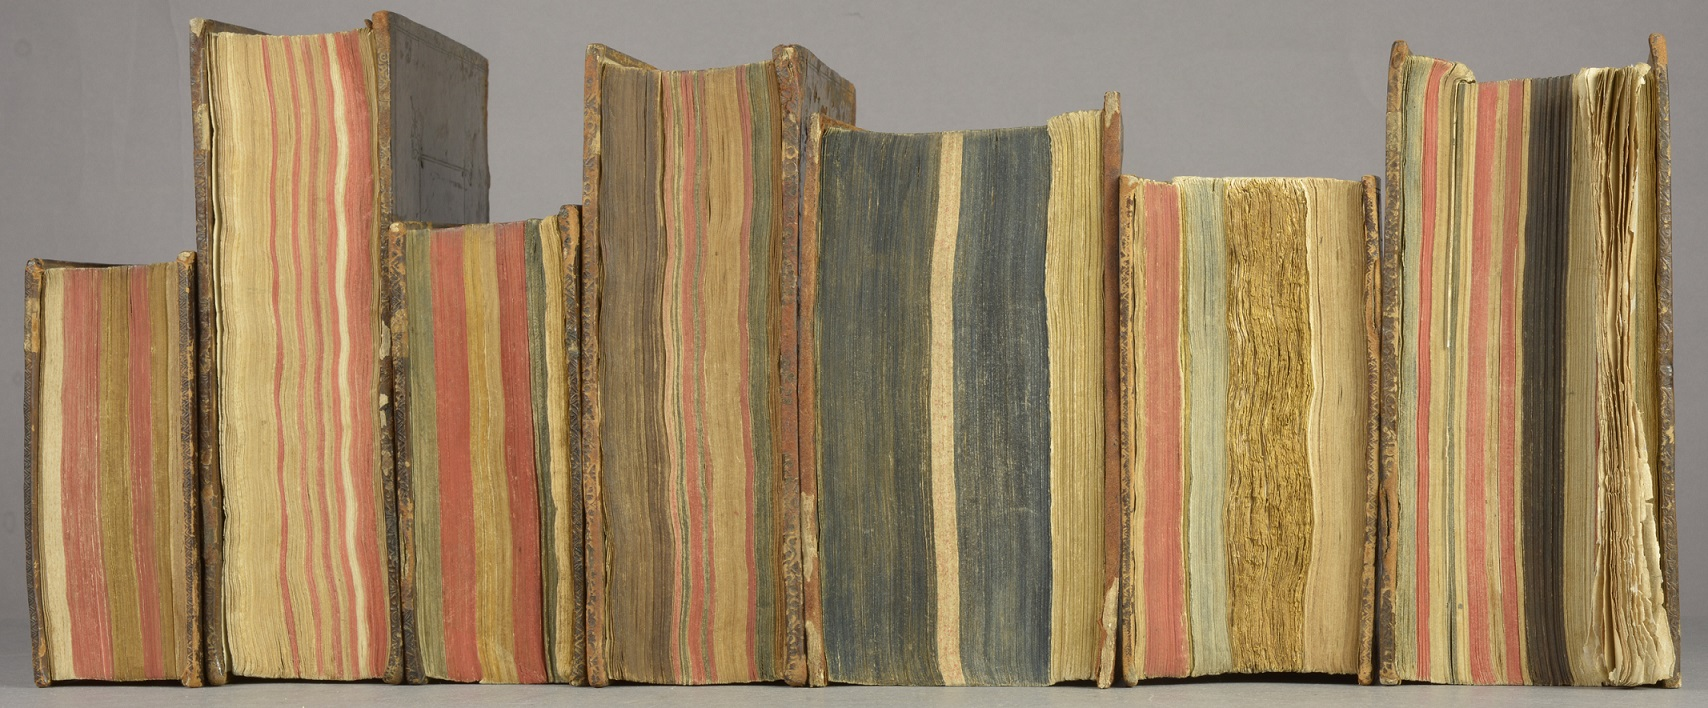 A selection of Crouch bindings displayed fore edge out, as they were probably intended to be (Photograph by Nikki Tomkins)